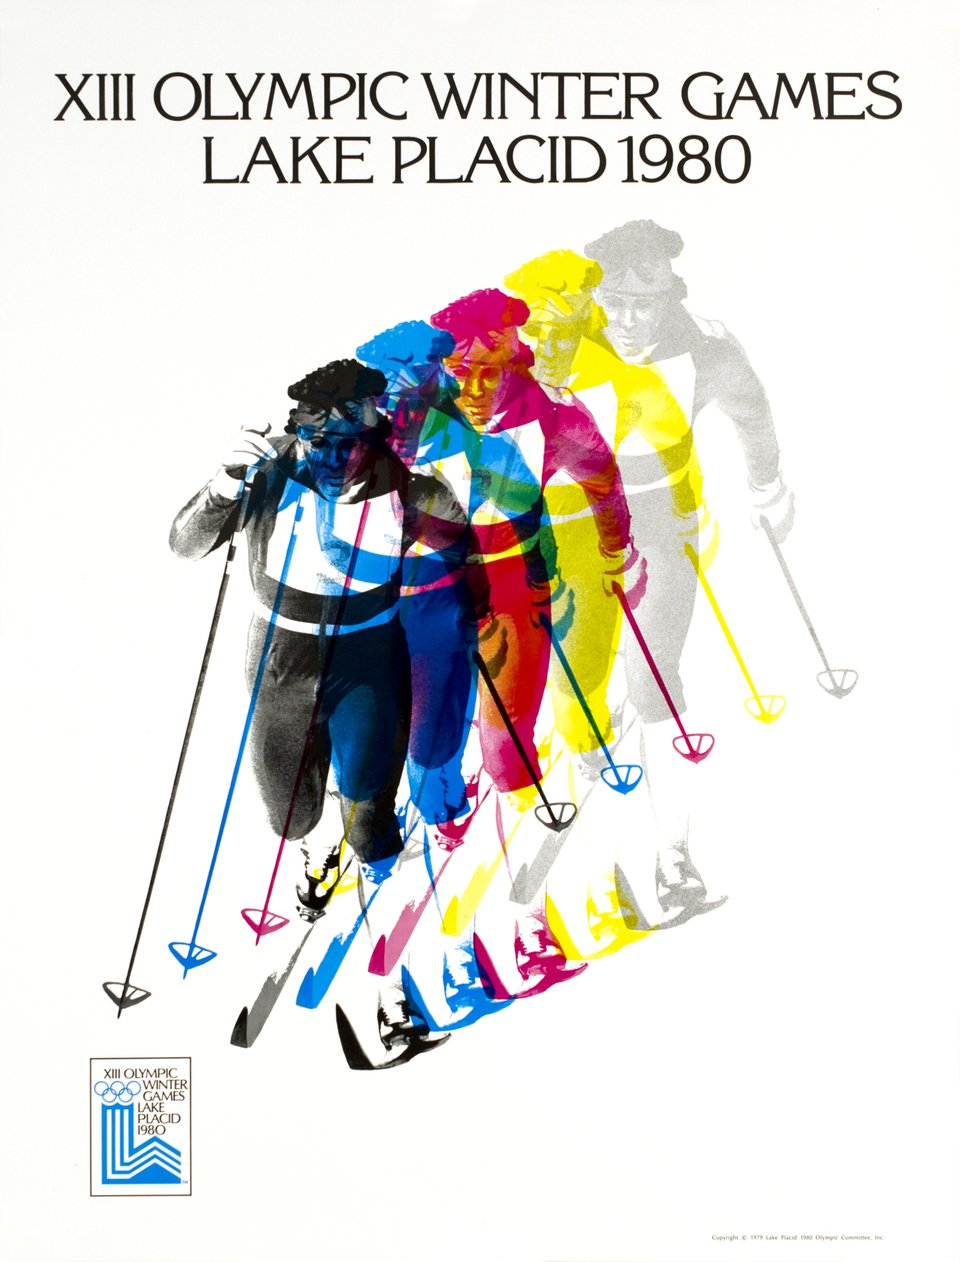 XIIIe Olympic Winter Games Lake Placid 1980 – Vintage poster – Robert MADDEN – 1980